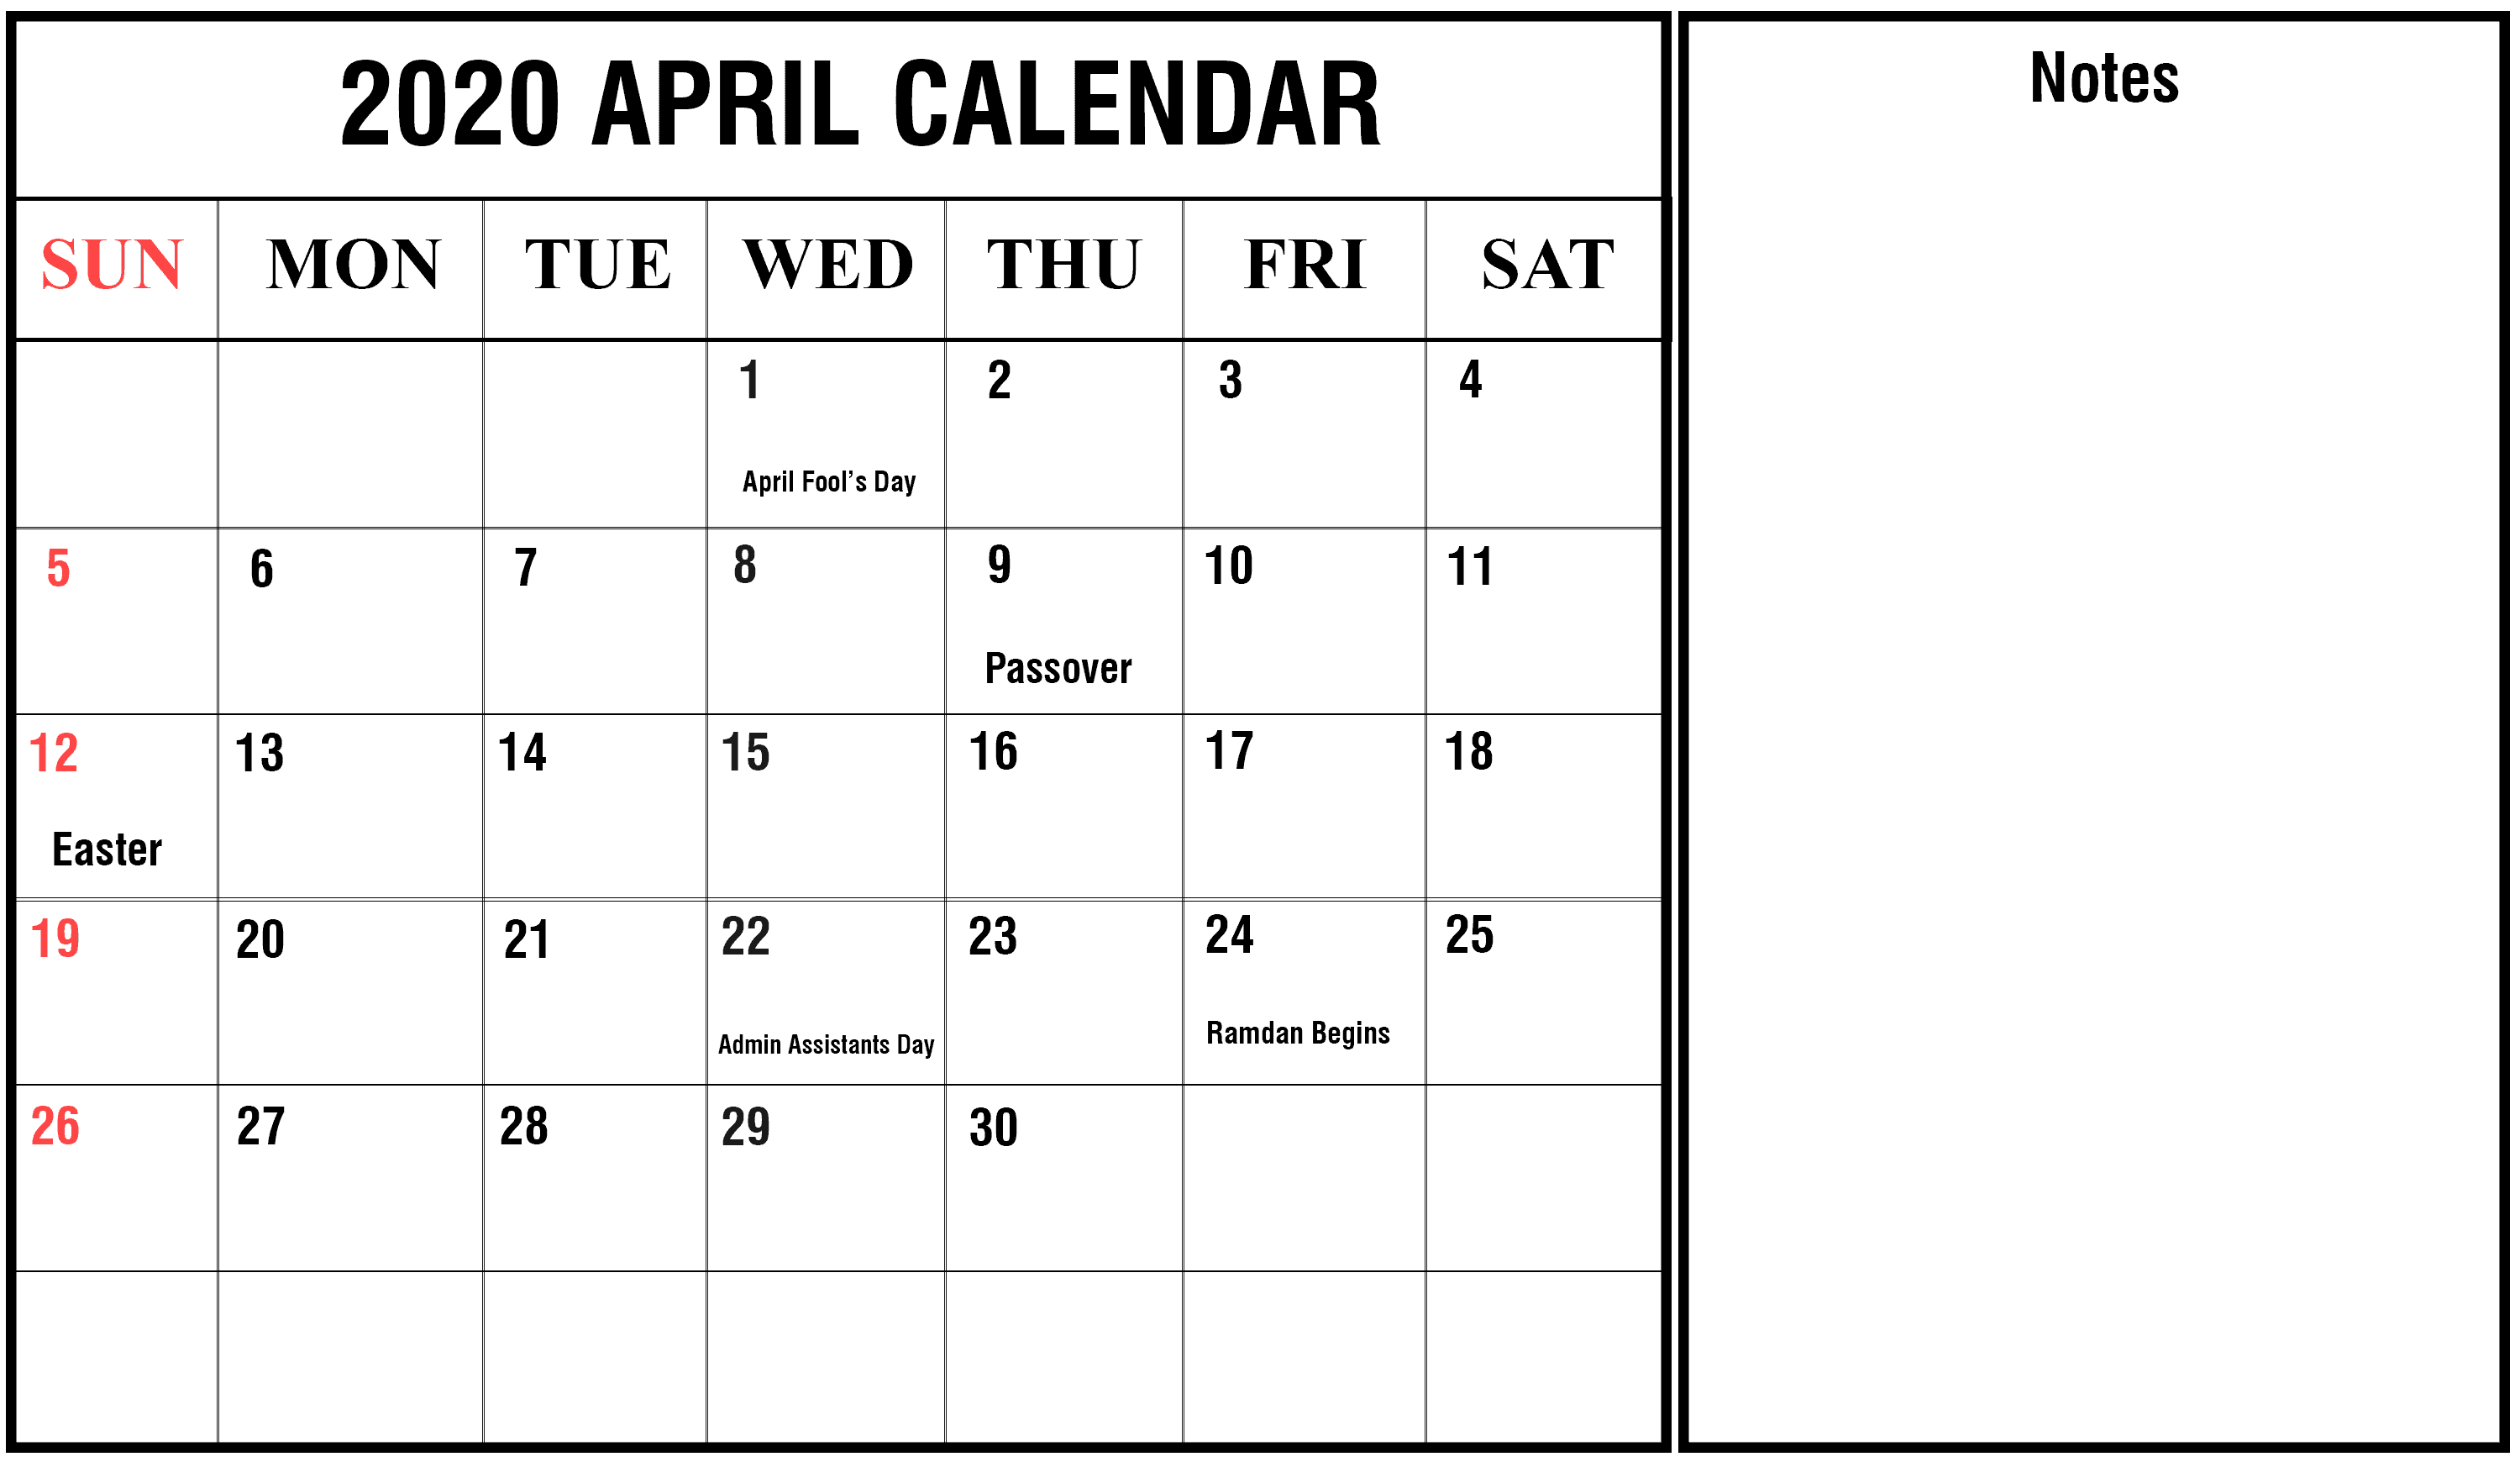 2020 April Calendar download